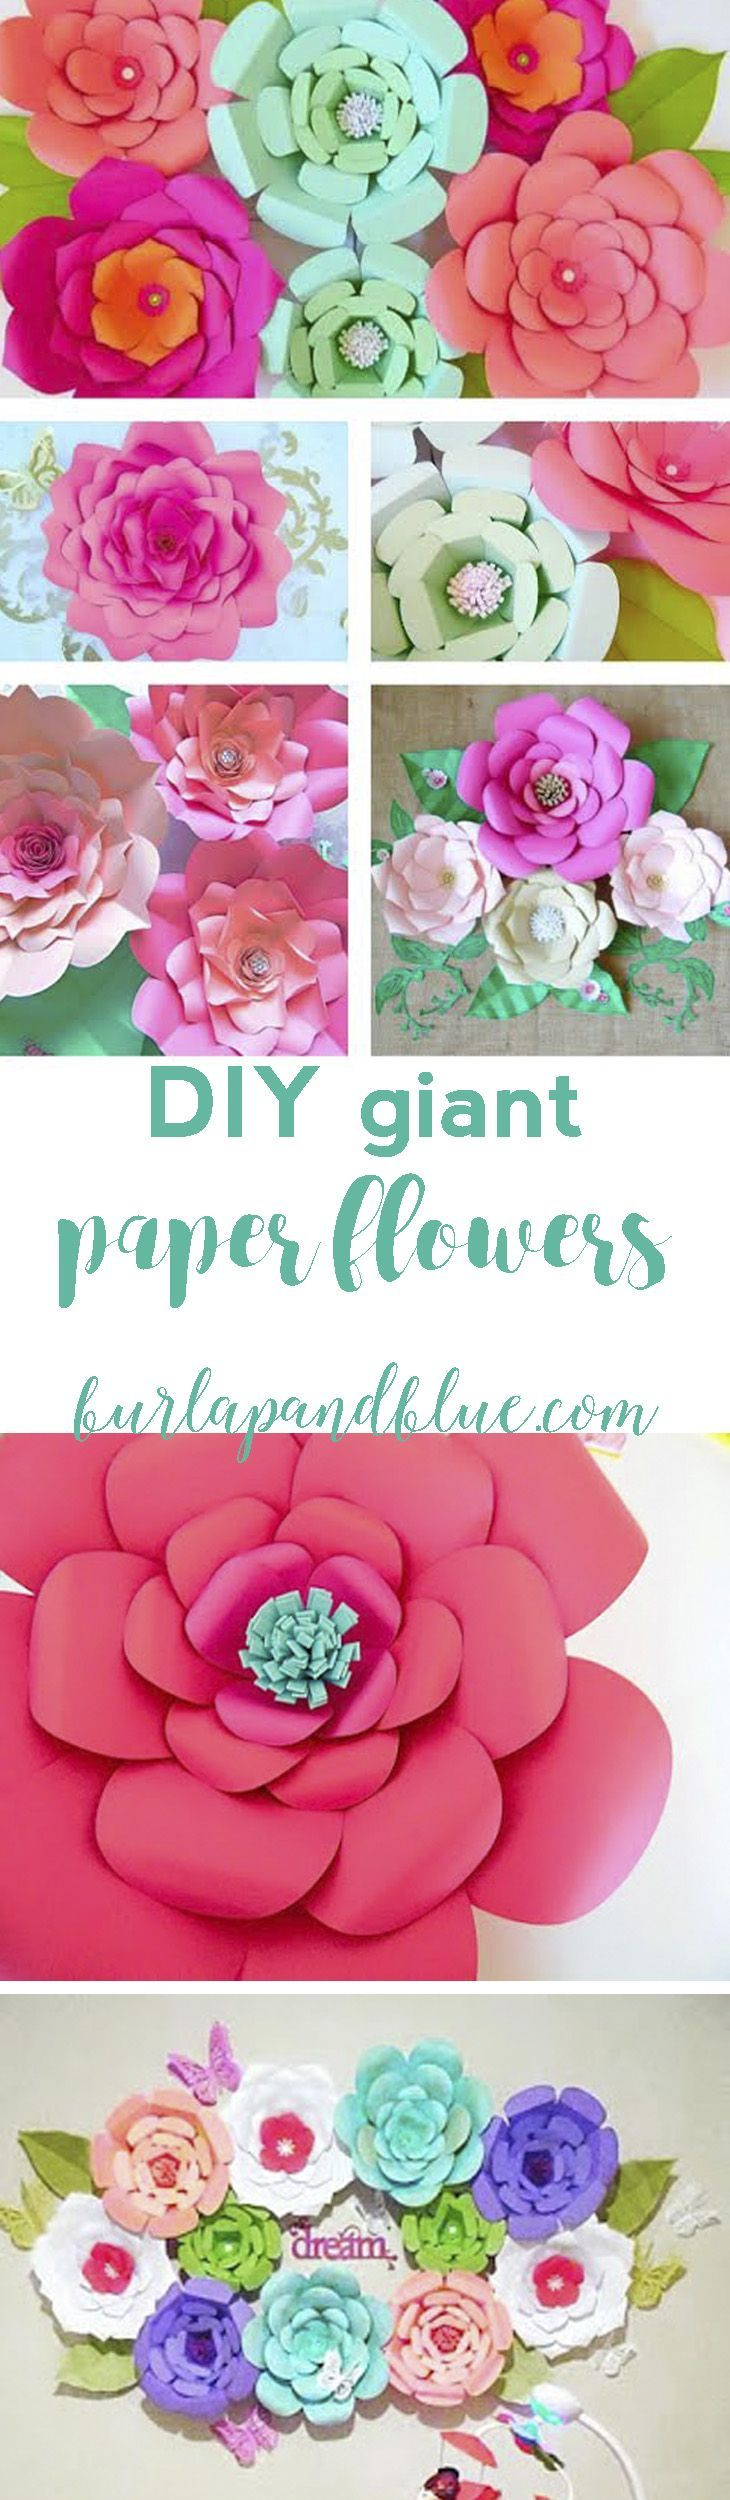 Flower How To Make Giant Paper